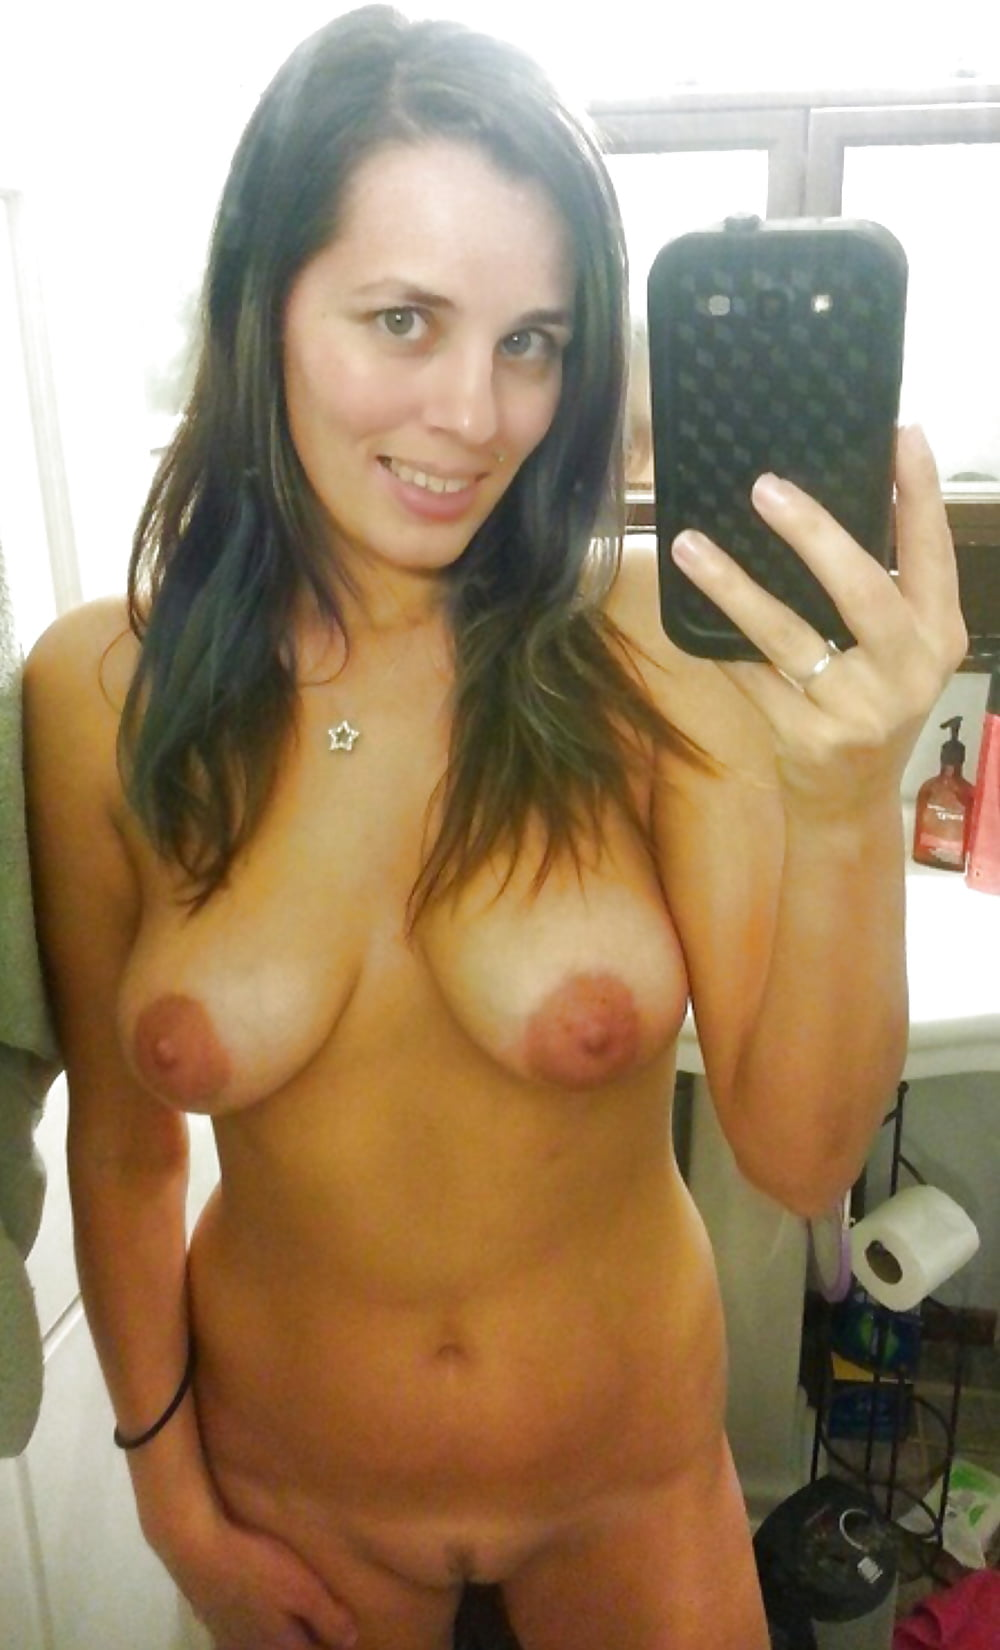 woman-taking-photo-of-self-naked-free-porn-cam-sex